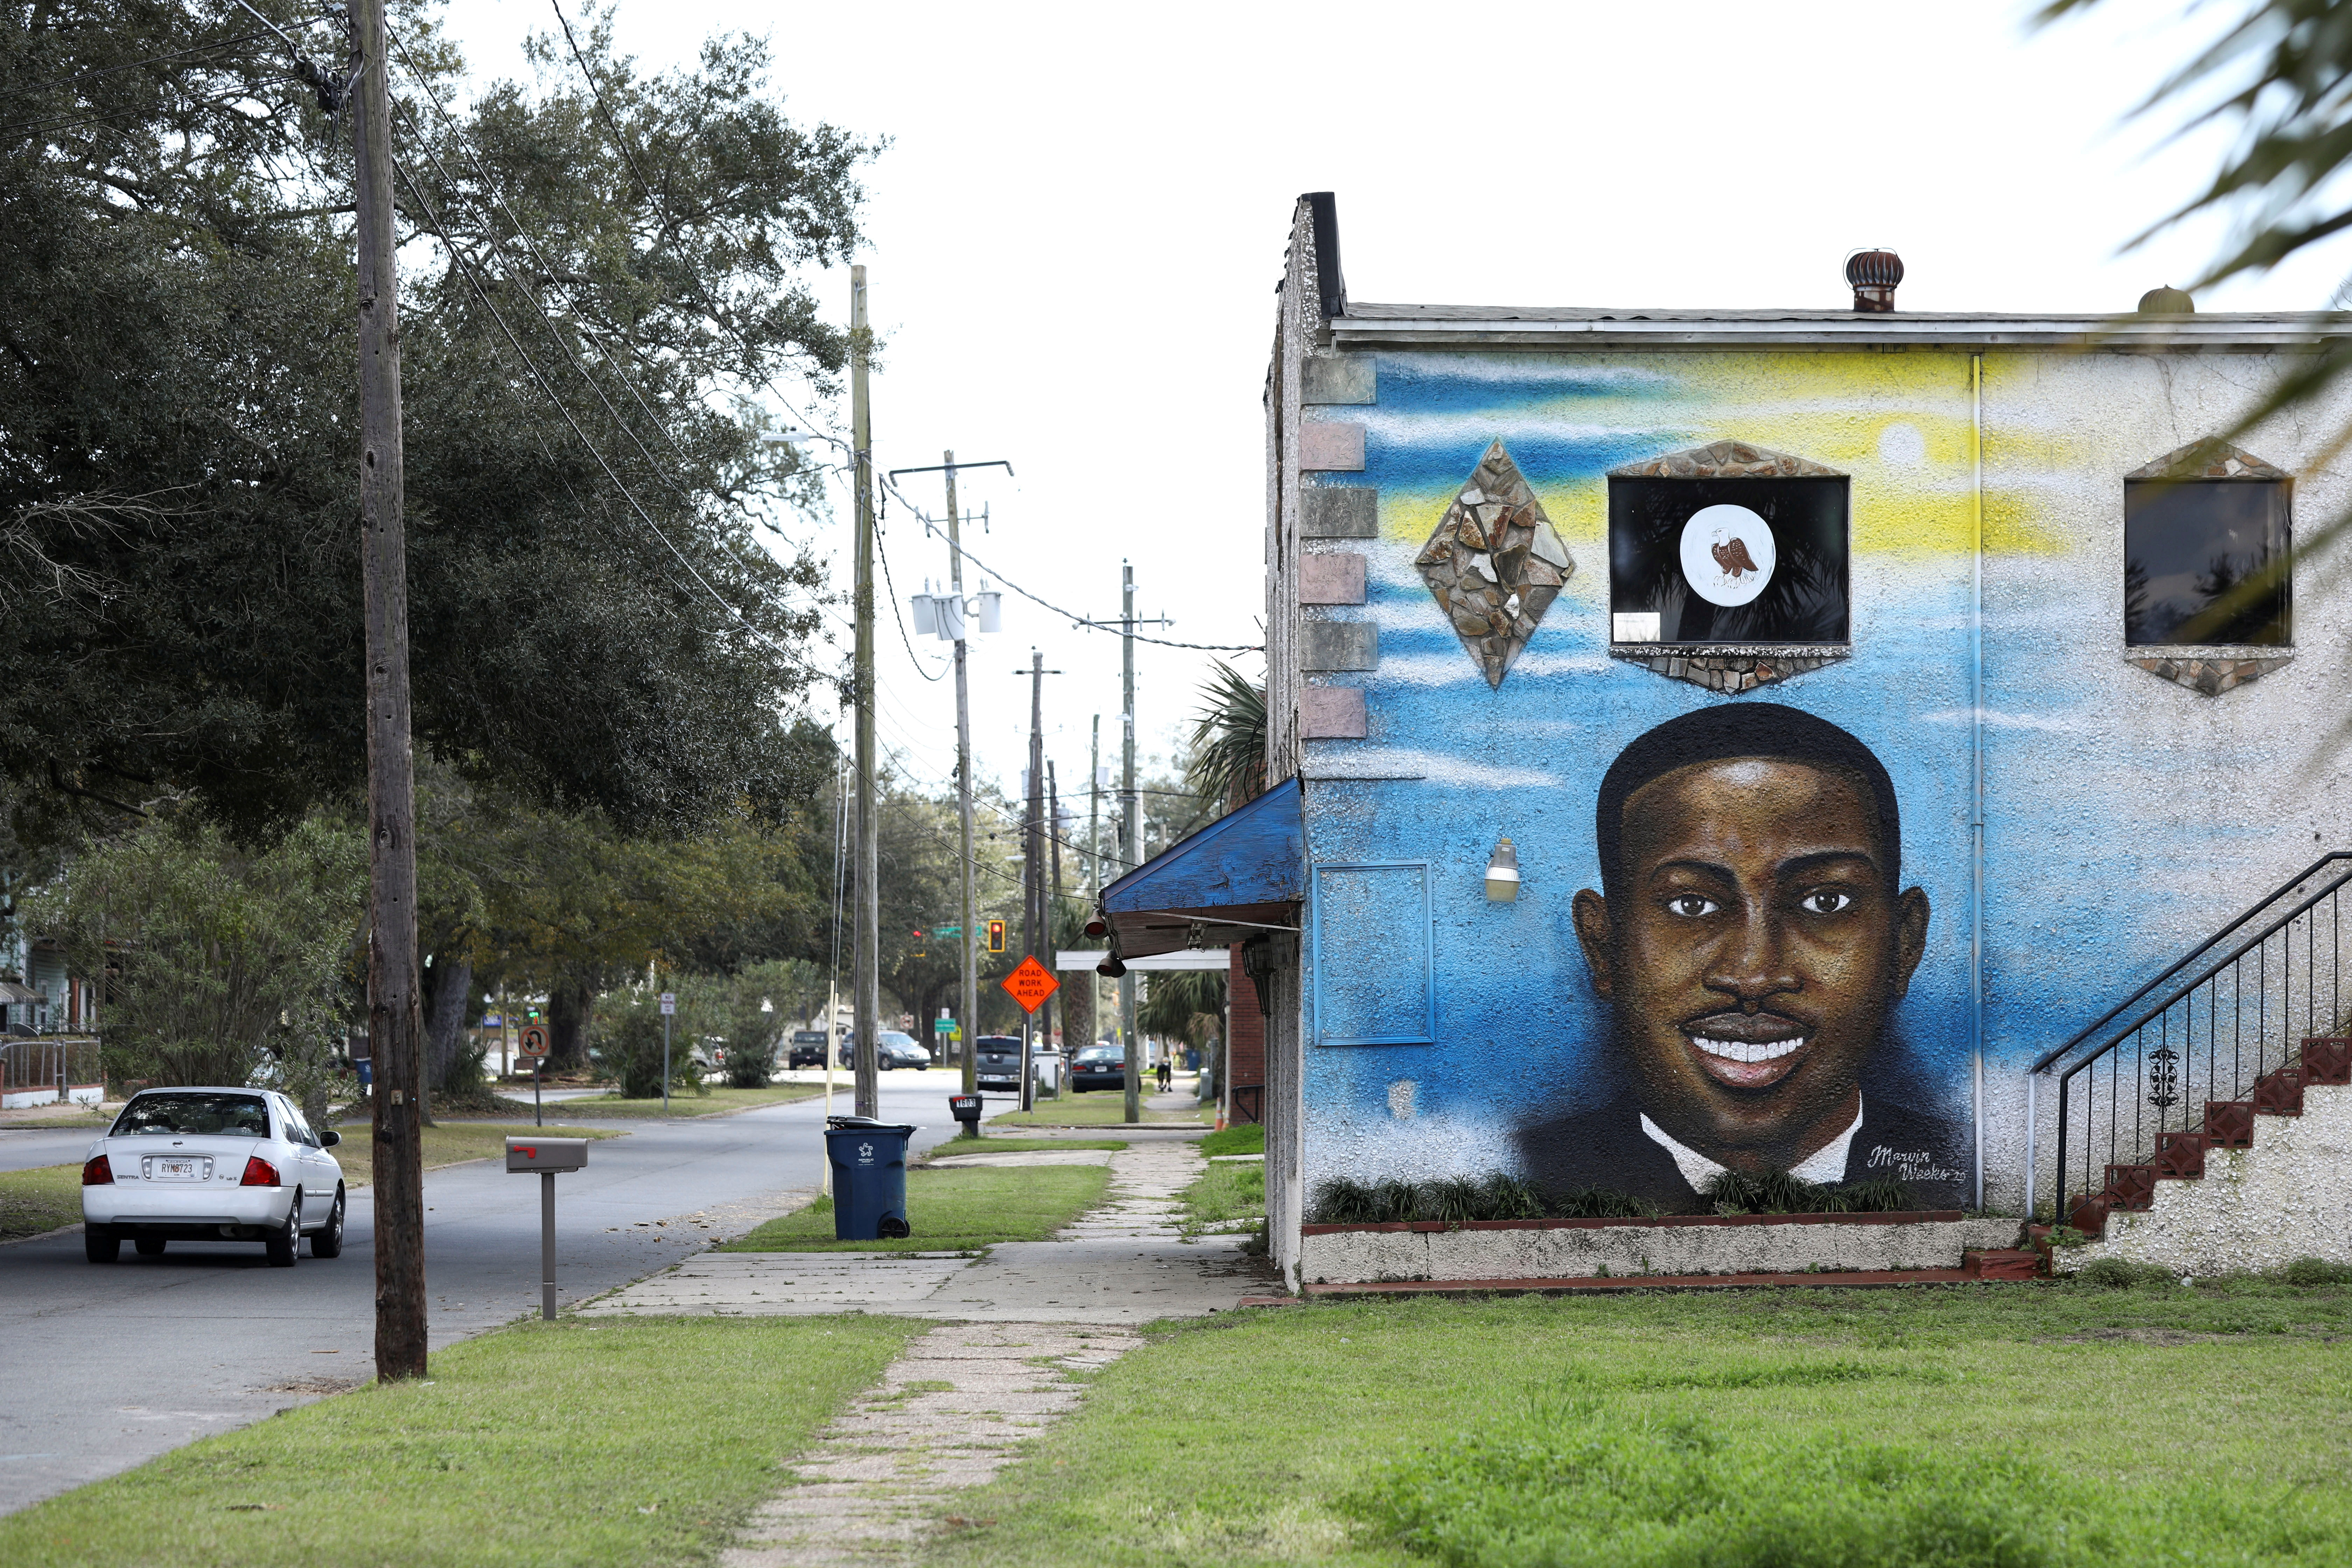 A mural depicts shot Black man Ahmaud Arbery as a Black History Month Memorial Ride is held in memory of those who have died through race-related violence, in Brunswick, Georgia, U.S., February 27, 2021. REUTERS/Dustin Chambers/File Photo